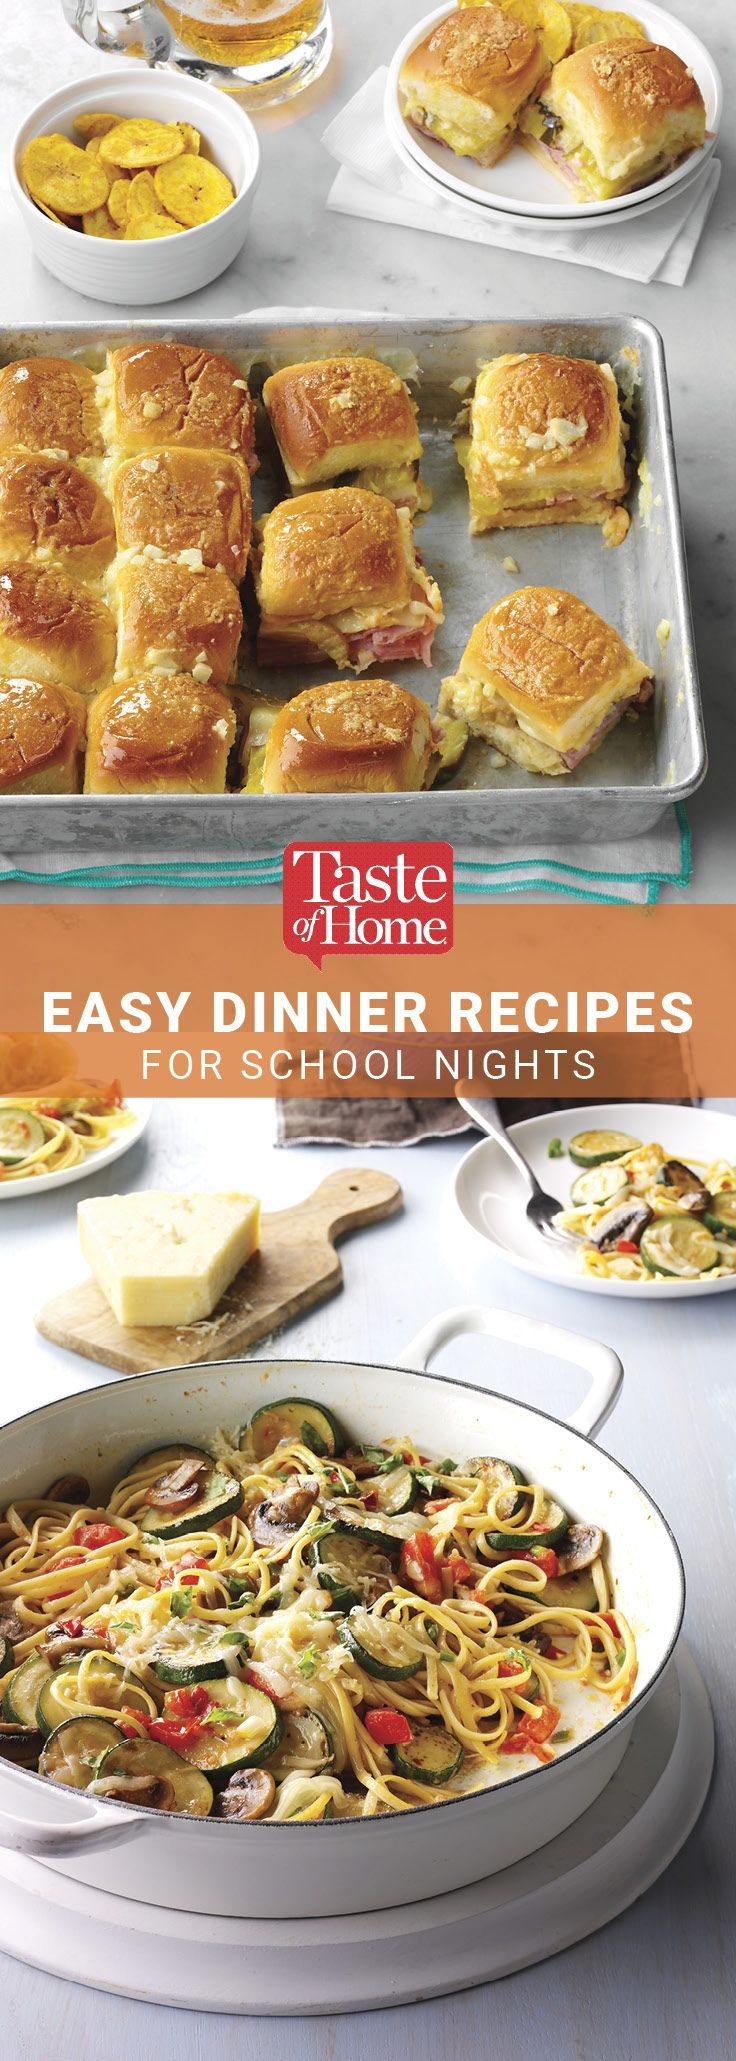 55 best Back-to-School Recipes and Tips images on Pinterest